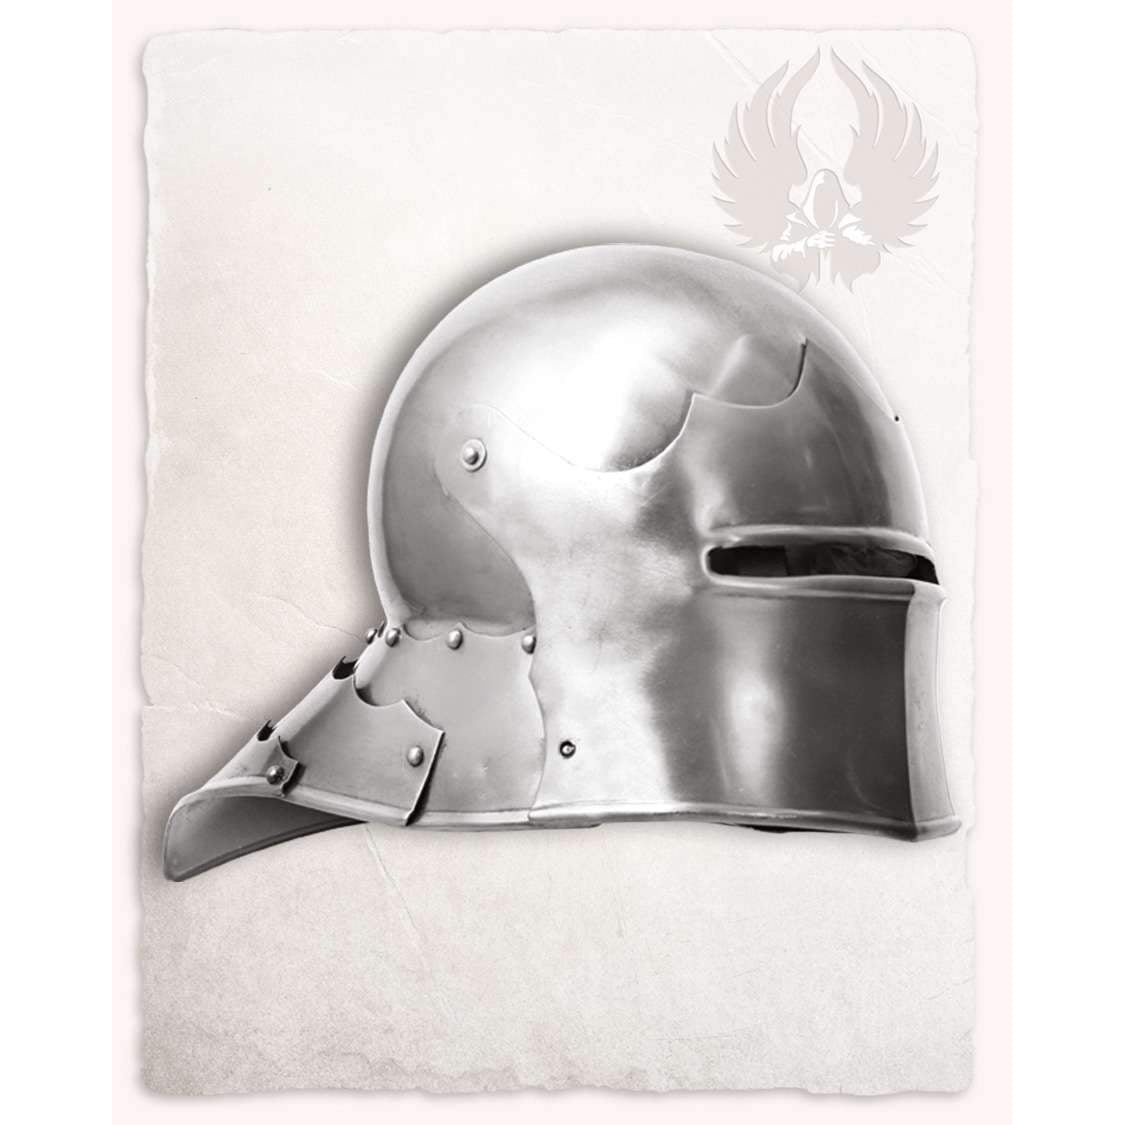 Mathes german sallet